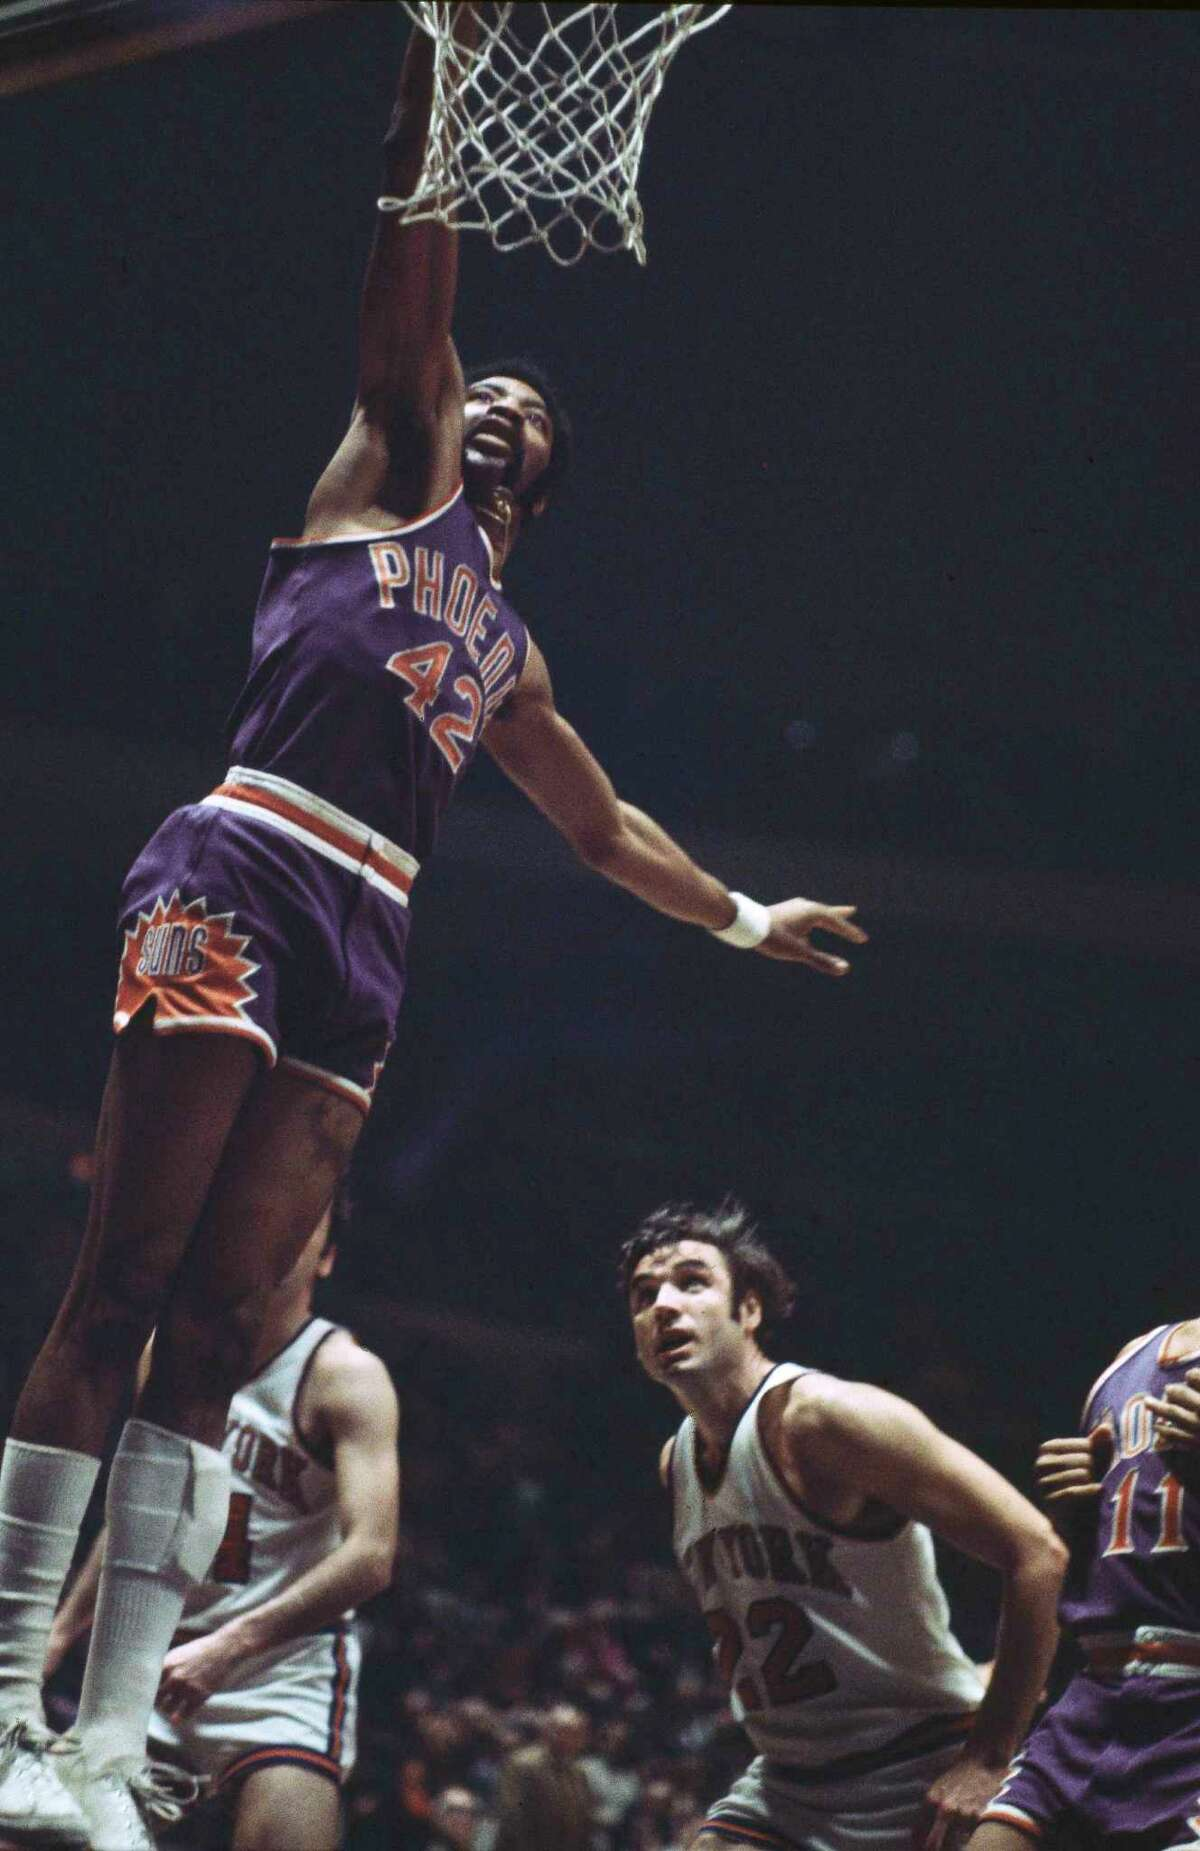 FILE - In this Feb. 16, 1971, file photo, Connie Hawkins of the Phoenix Suns goes to the basket against the New York Knicks at Madison Square Garden in New York. Basketball great Connie Hawkins has died at 75. The Hall of Famer's death was announced in a statement Saturday, Oct. 7, 2017, by the Phoenix Suns, the team with which he spent his most productive NBA seasons. The Suns told The Associated Press they confirmed the death with his family. The 6-foot-8 Hawkins was a dazzling playground legend in New York City who rose to basketball's heights. The Suns lauded his